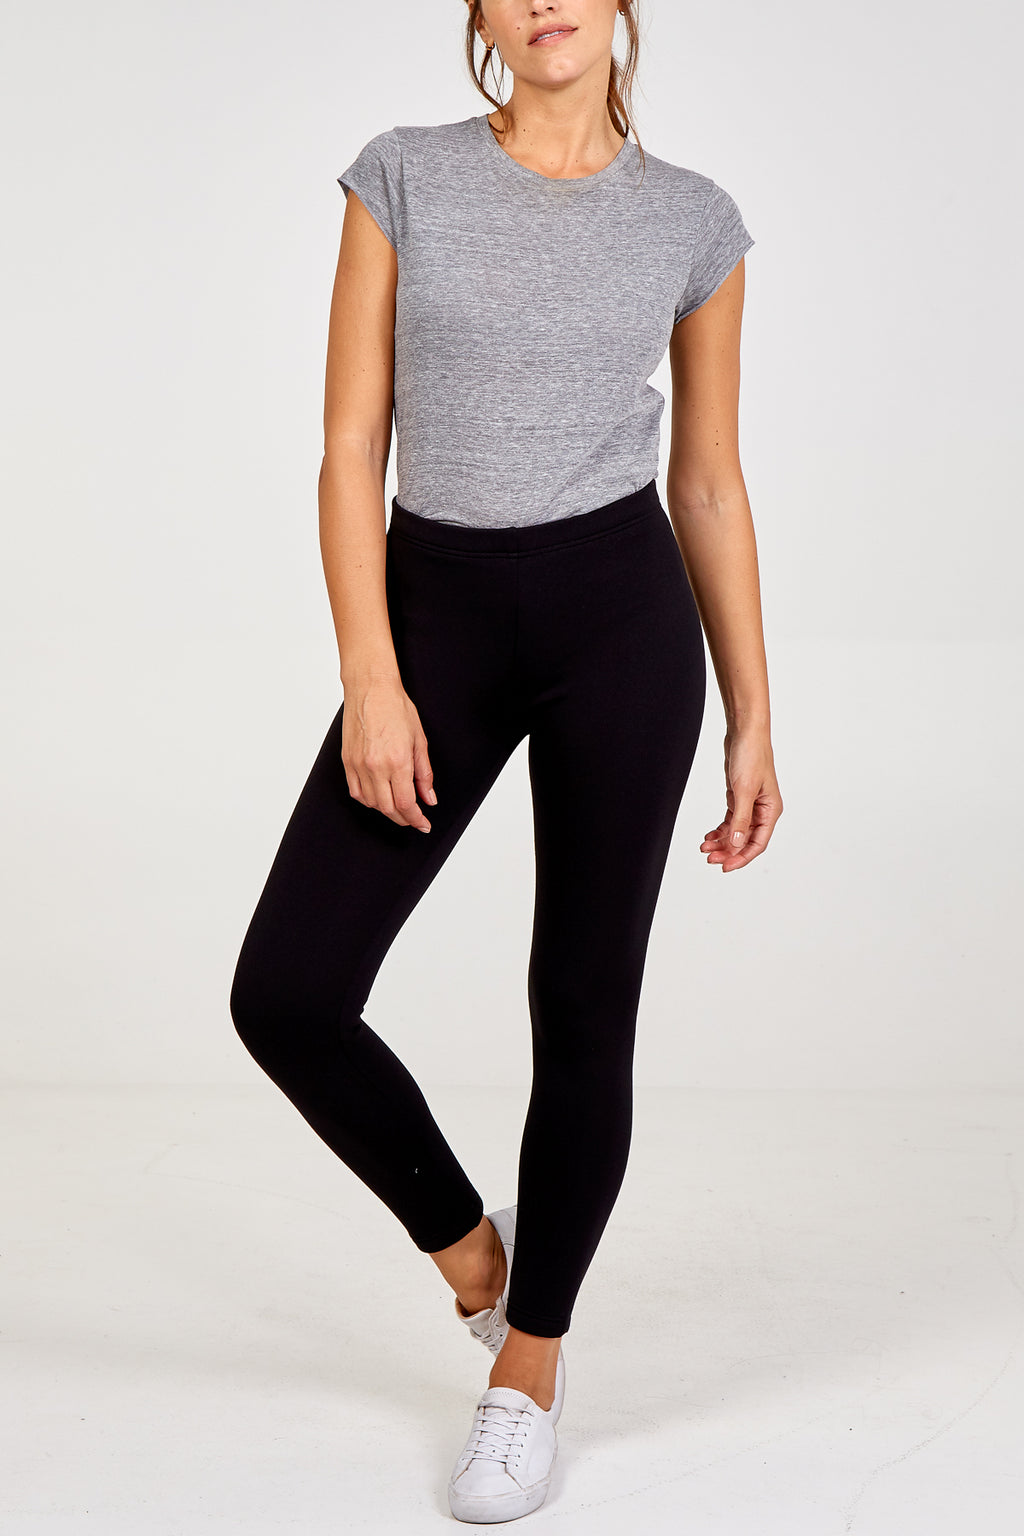 Basic Teddy Fleece Lined Leggings